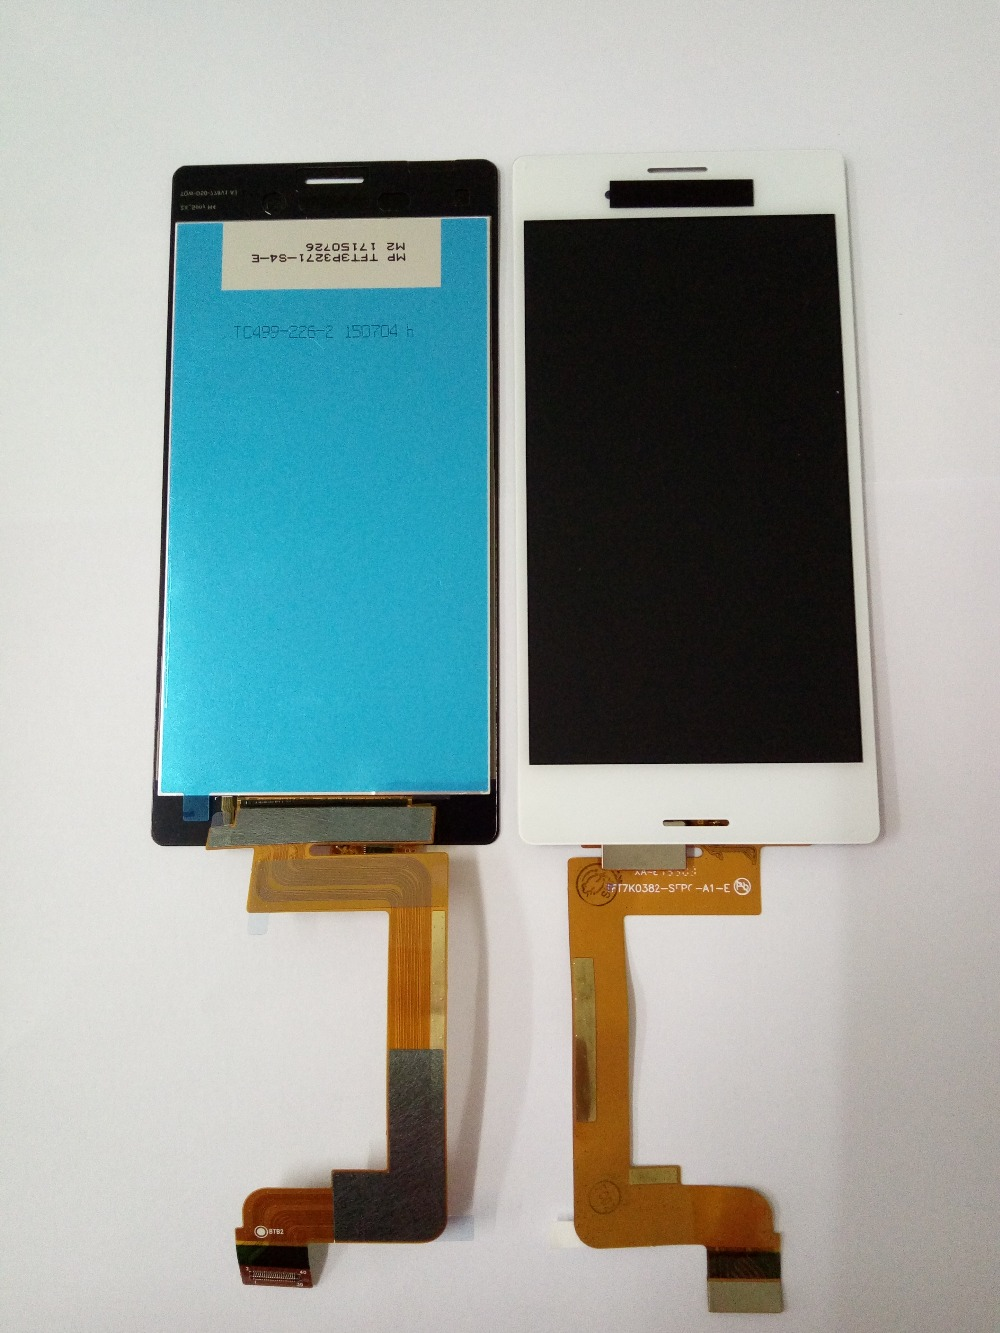 ФОТО New For Sony Xperia M4 Aqua E2303 E2333 E2353 LCD Display With Touch Screen Digitizer glass Assembly Free shipping